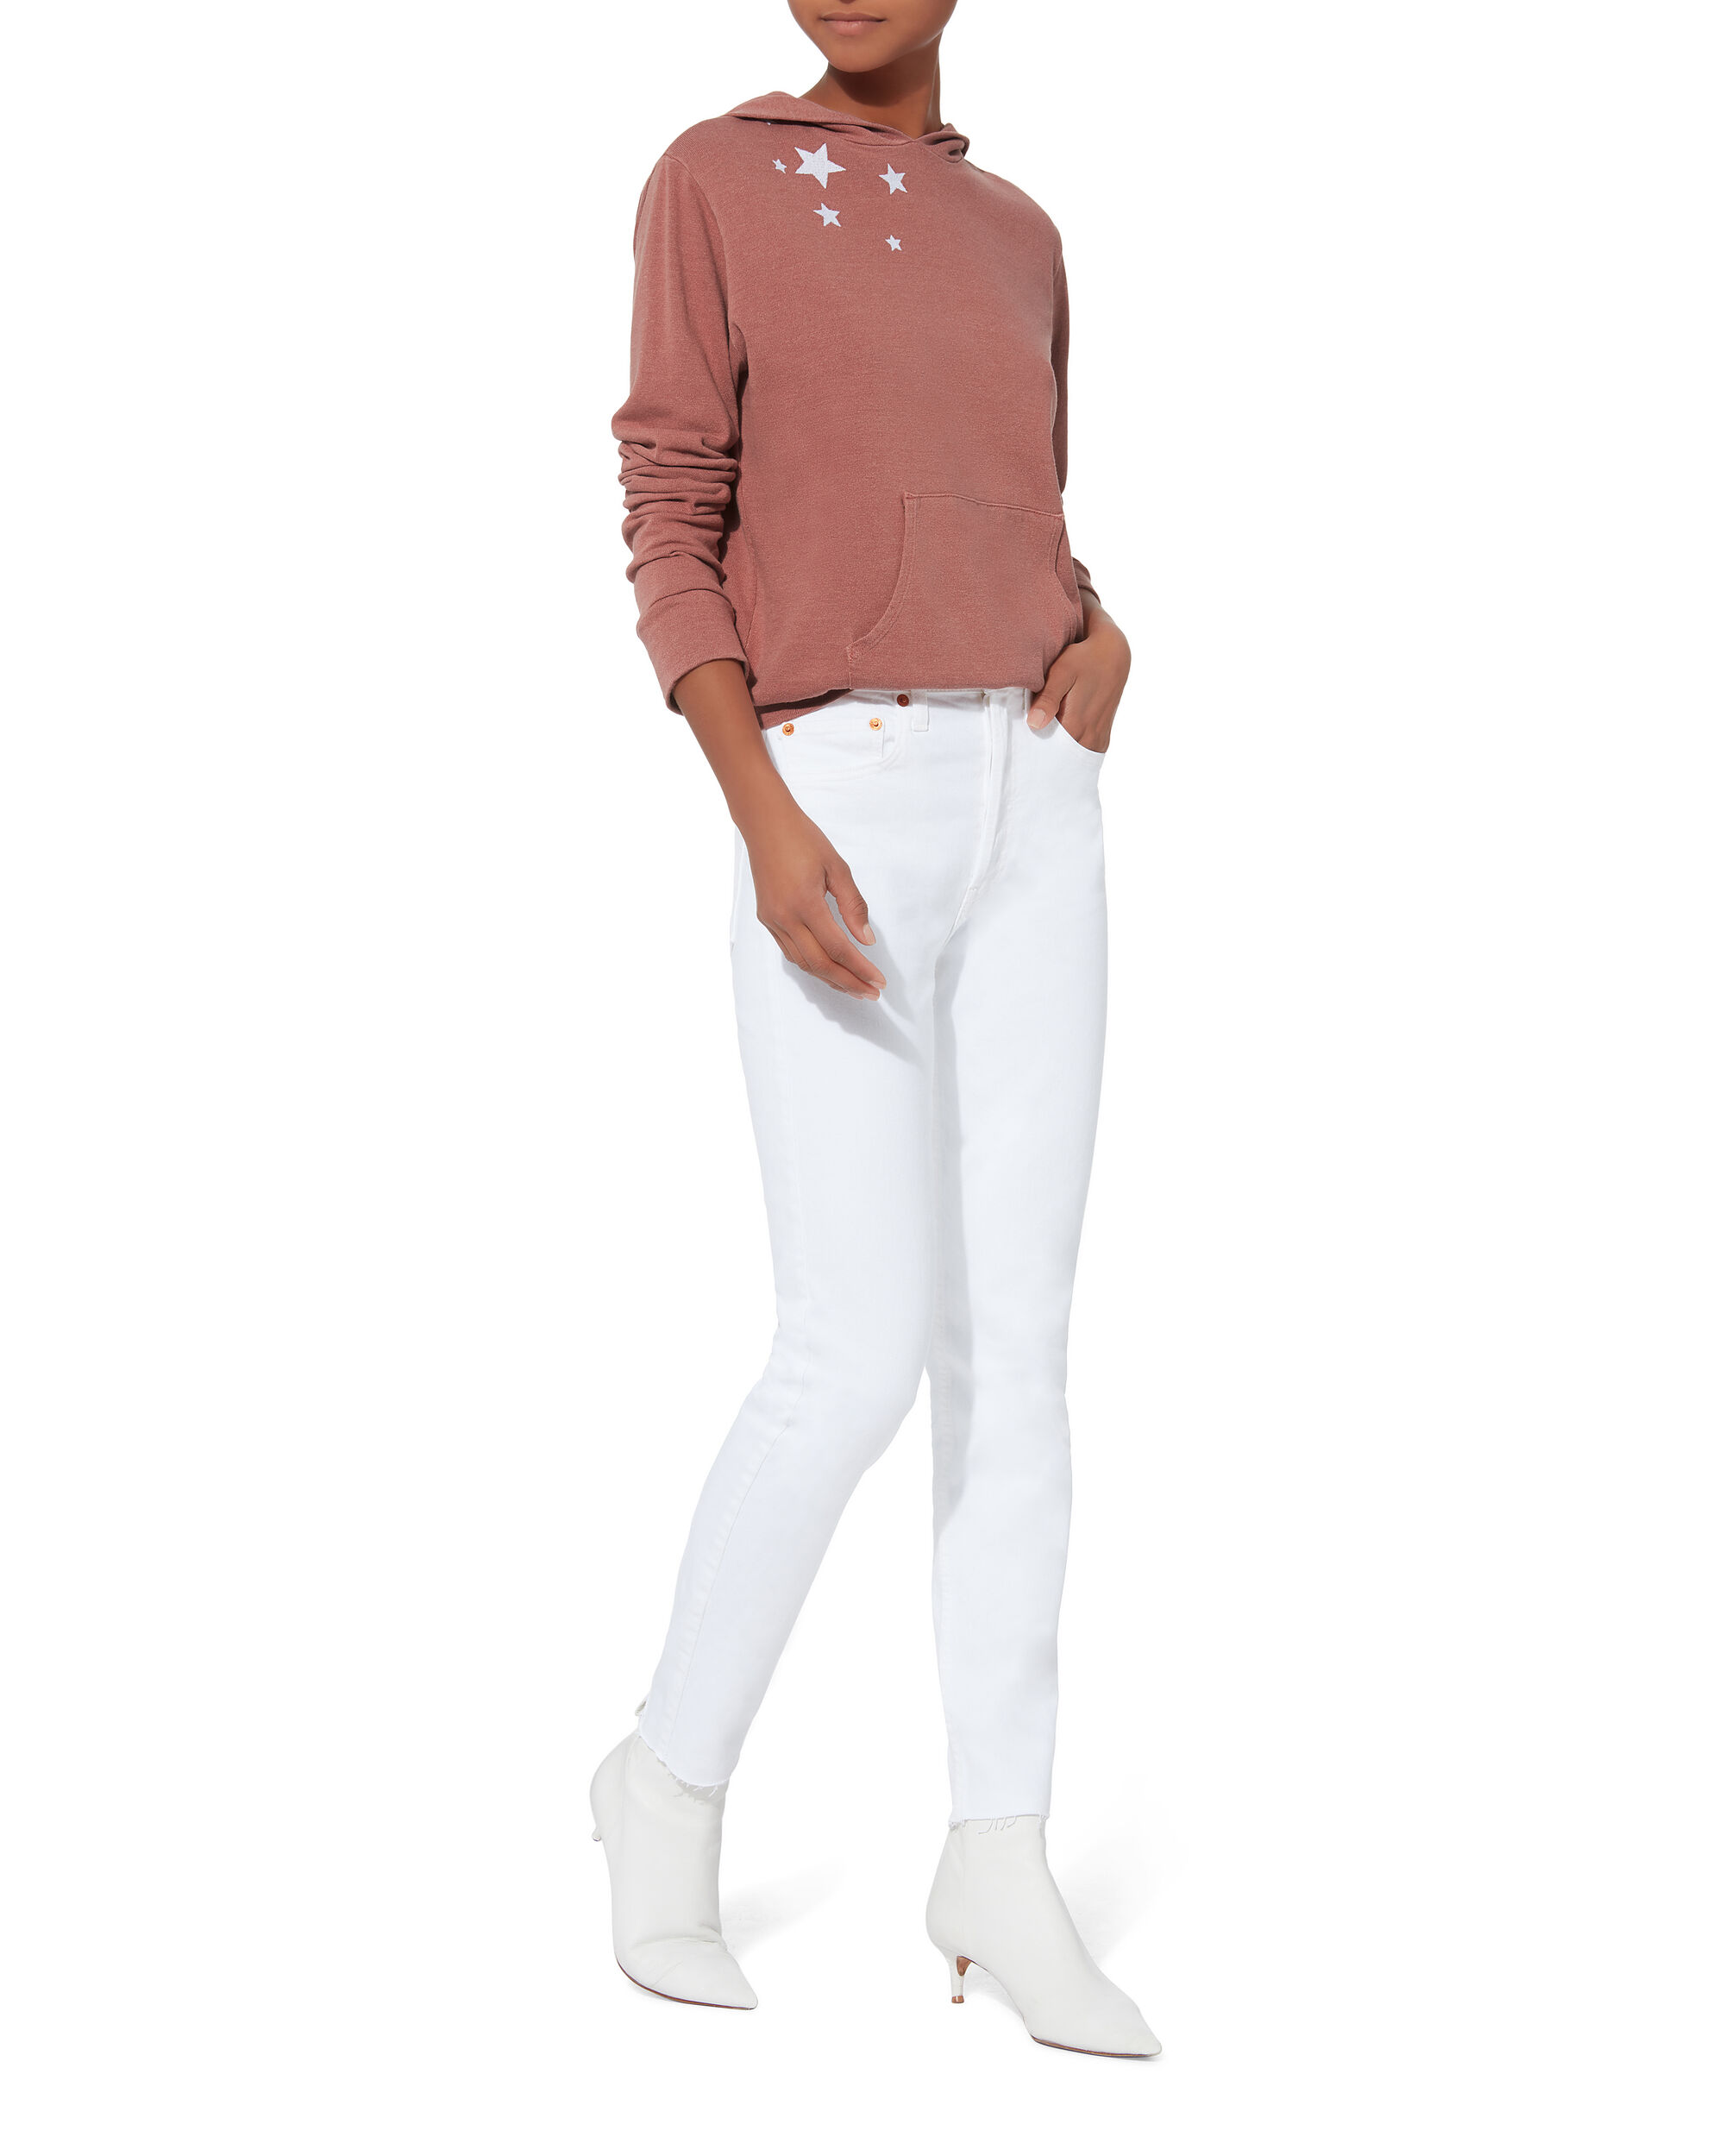 High-Rise Ankle Crop White Jeans, WHITE, hi-res